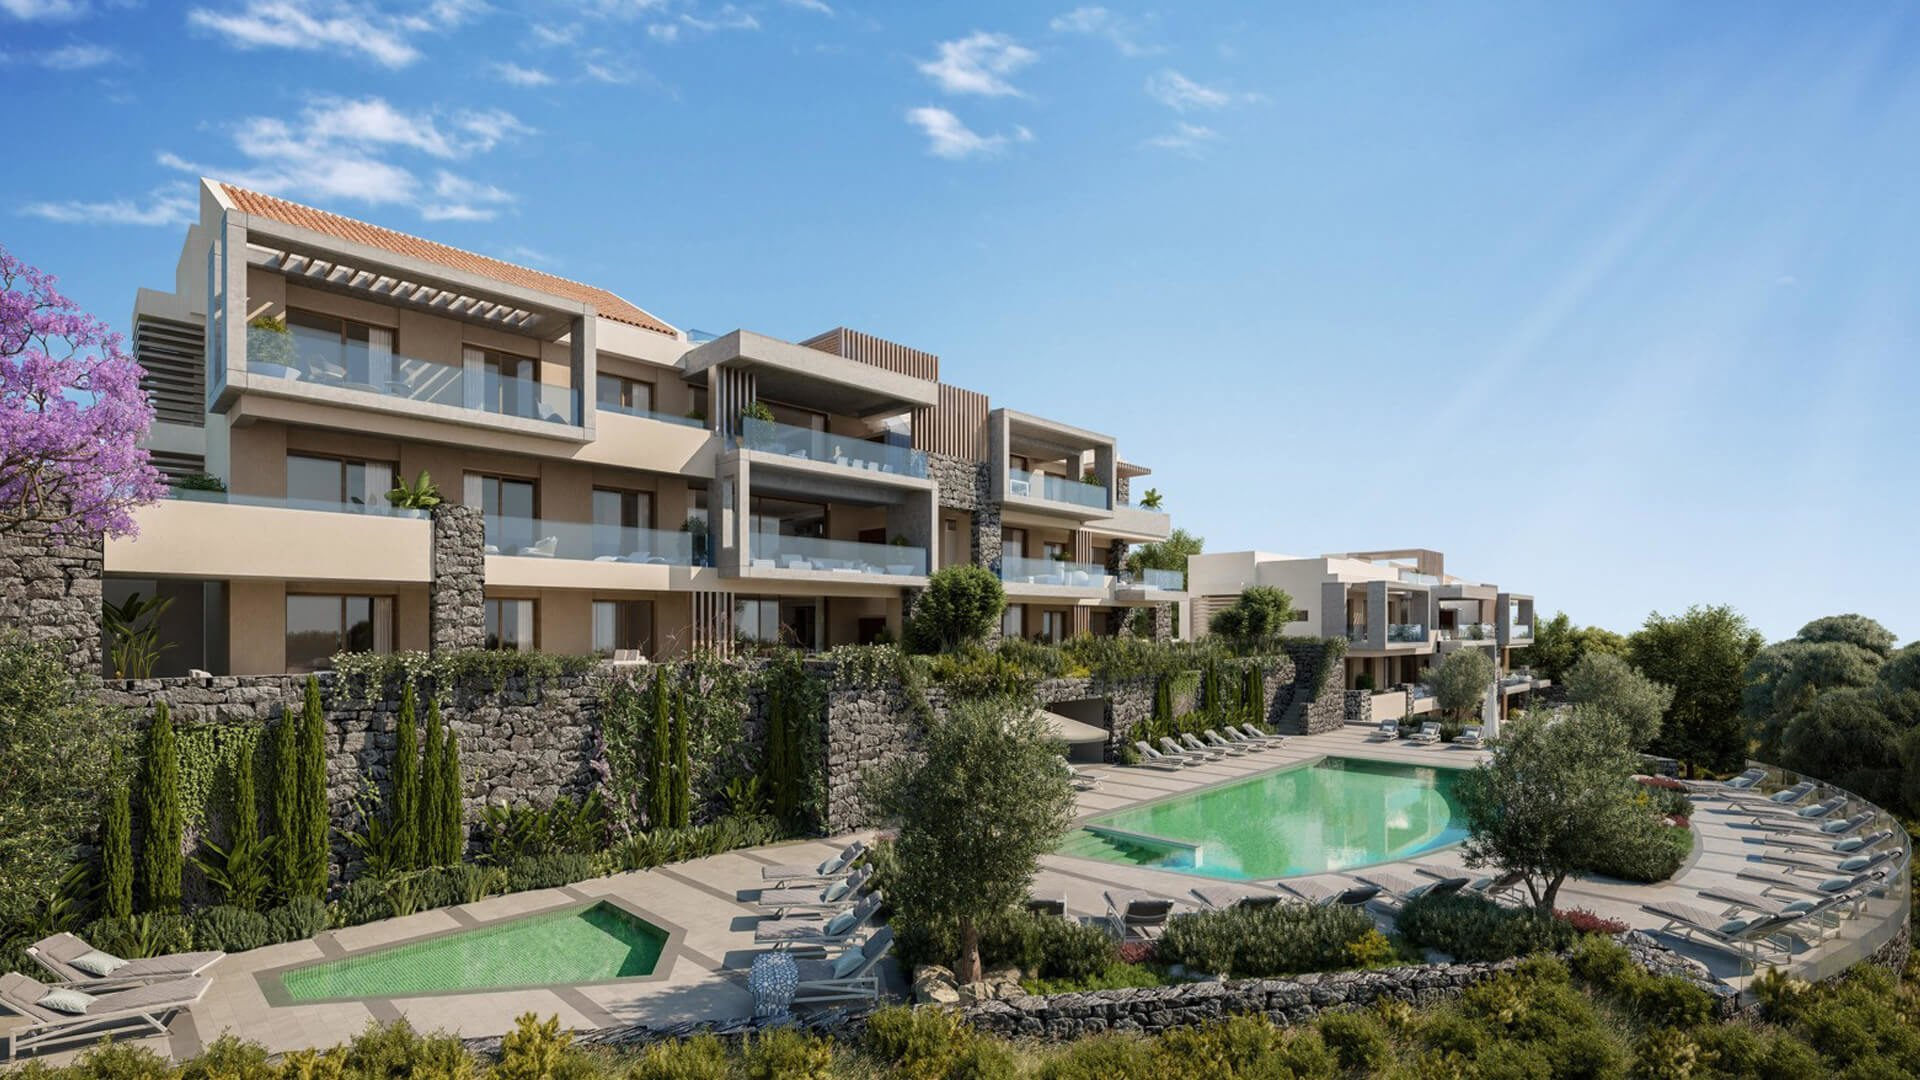 Apartments Benahavis